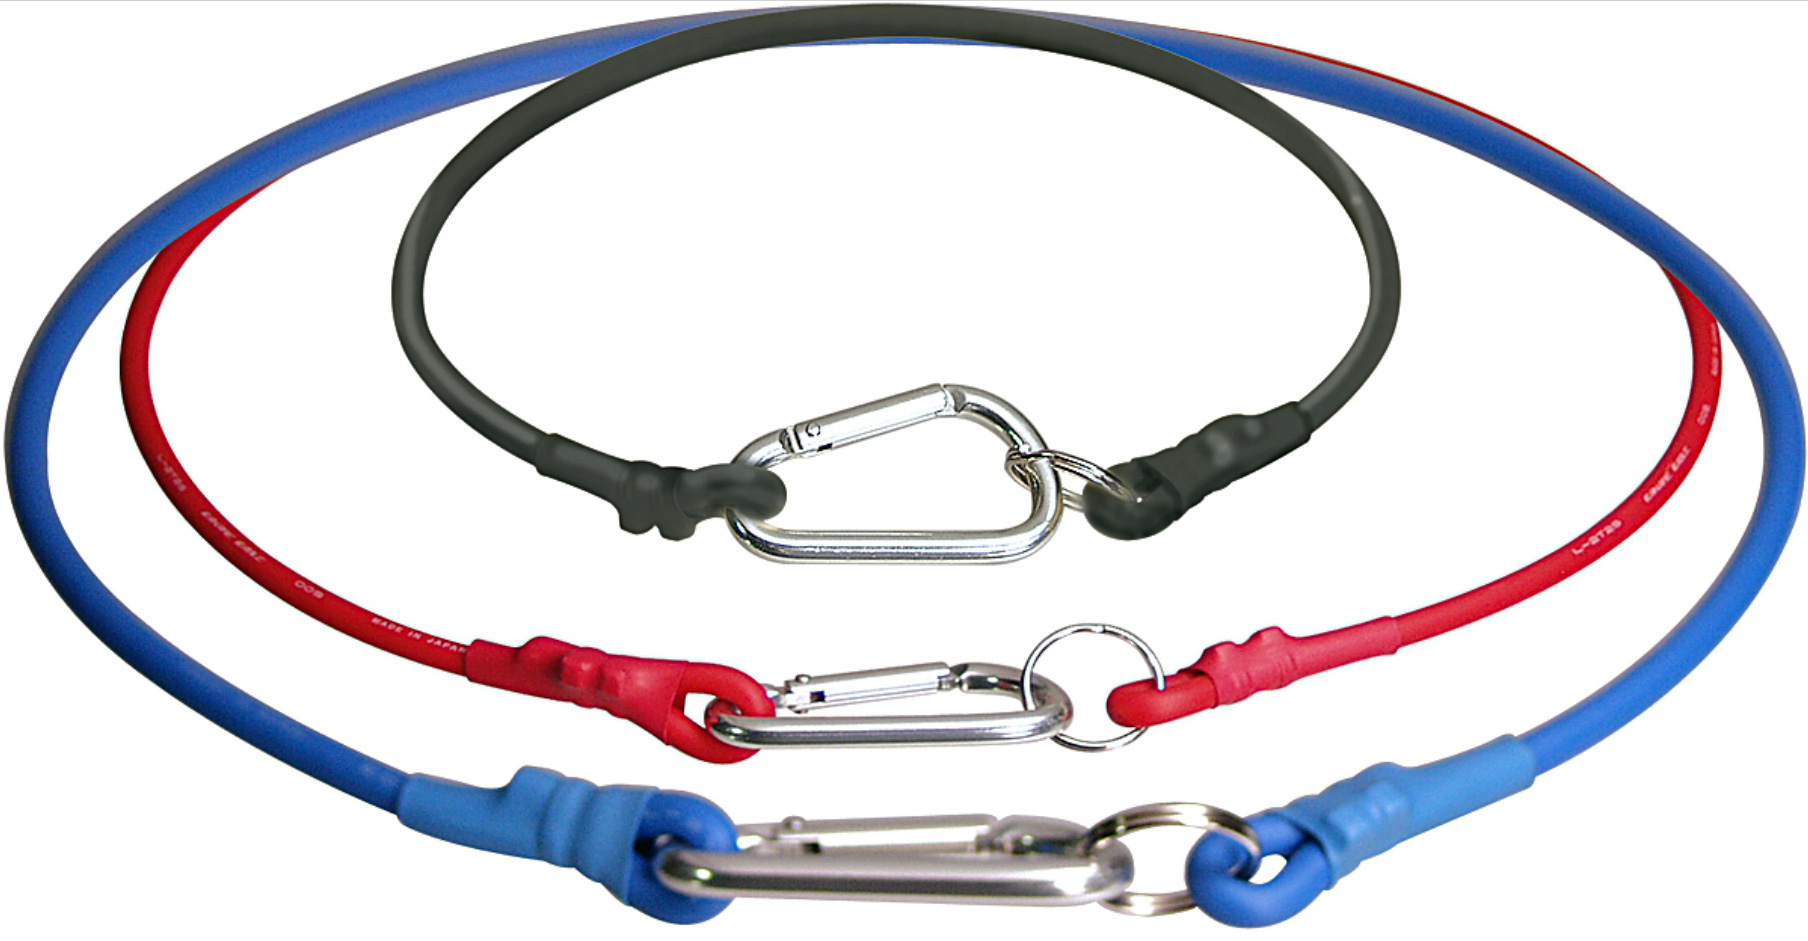 Gaffers Tape Holder Strap - 2 Foot Loop GT-CTS2